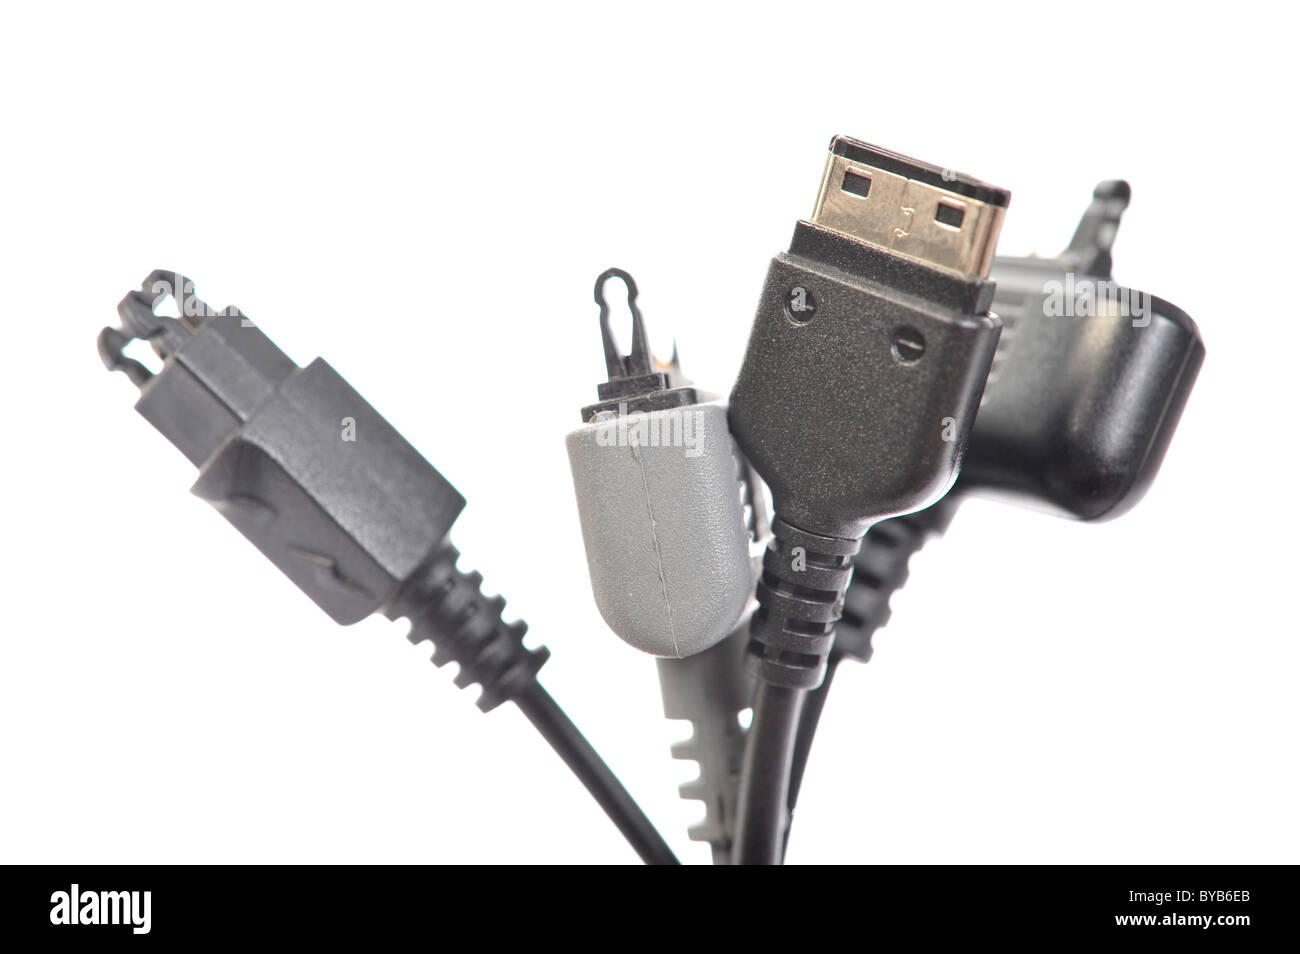 Various plugs for mobile phone charging connections, micro-USB plug standardization in 2011 - Stock Image